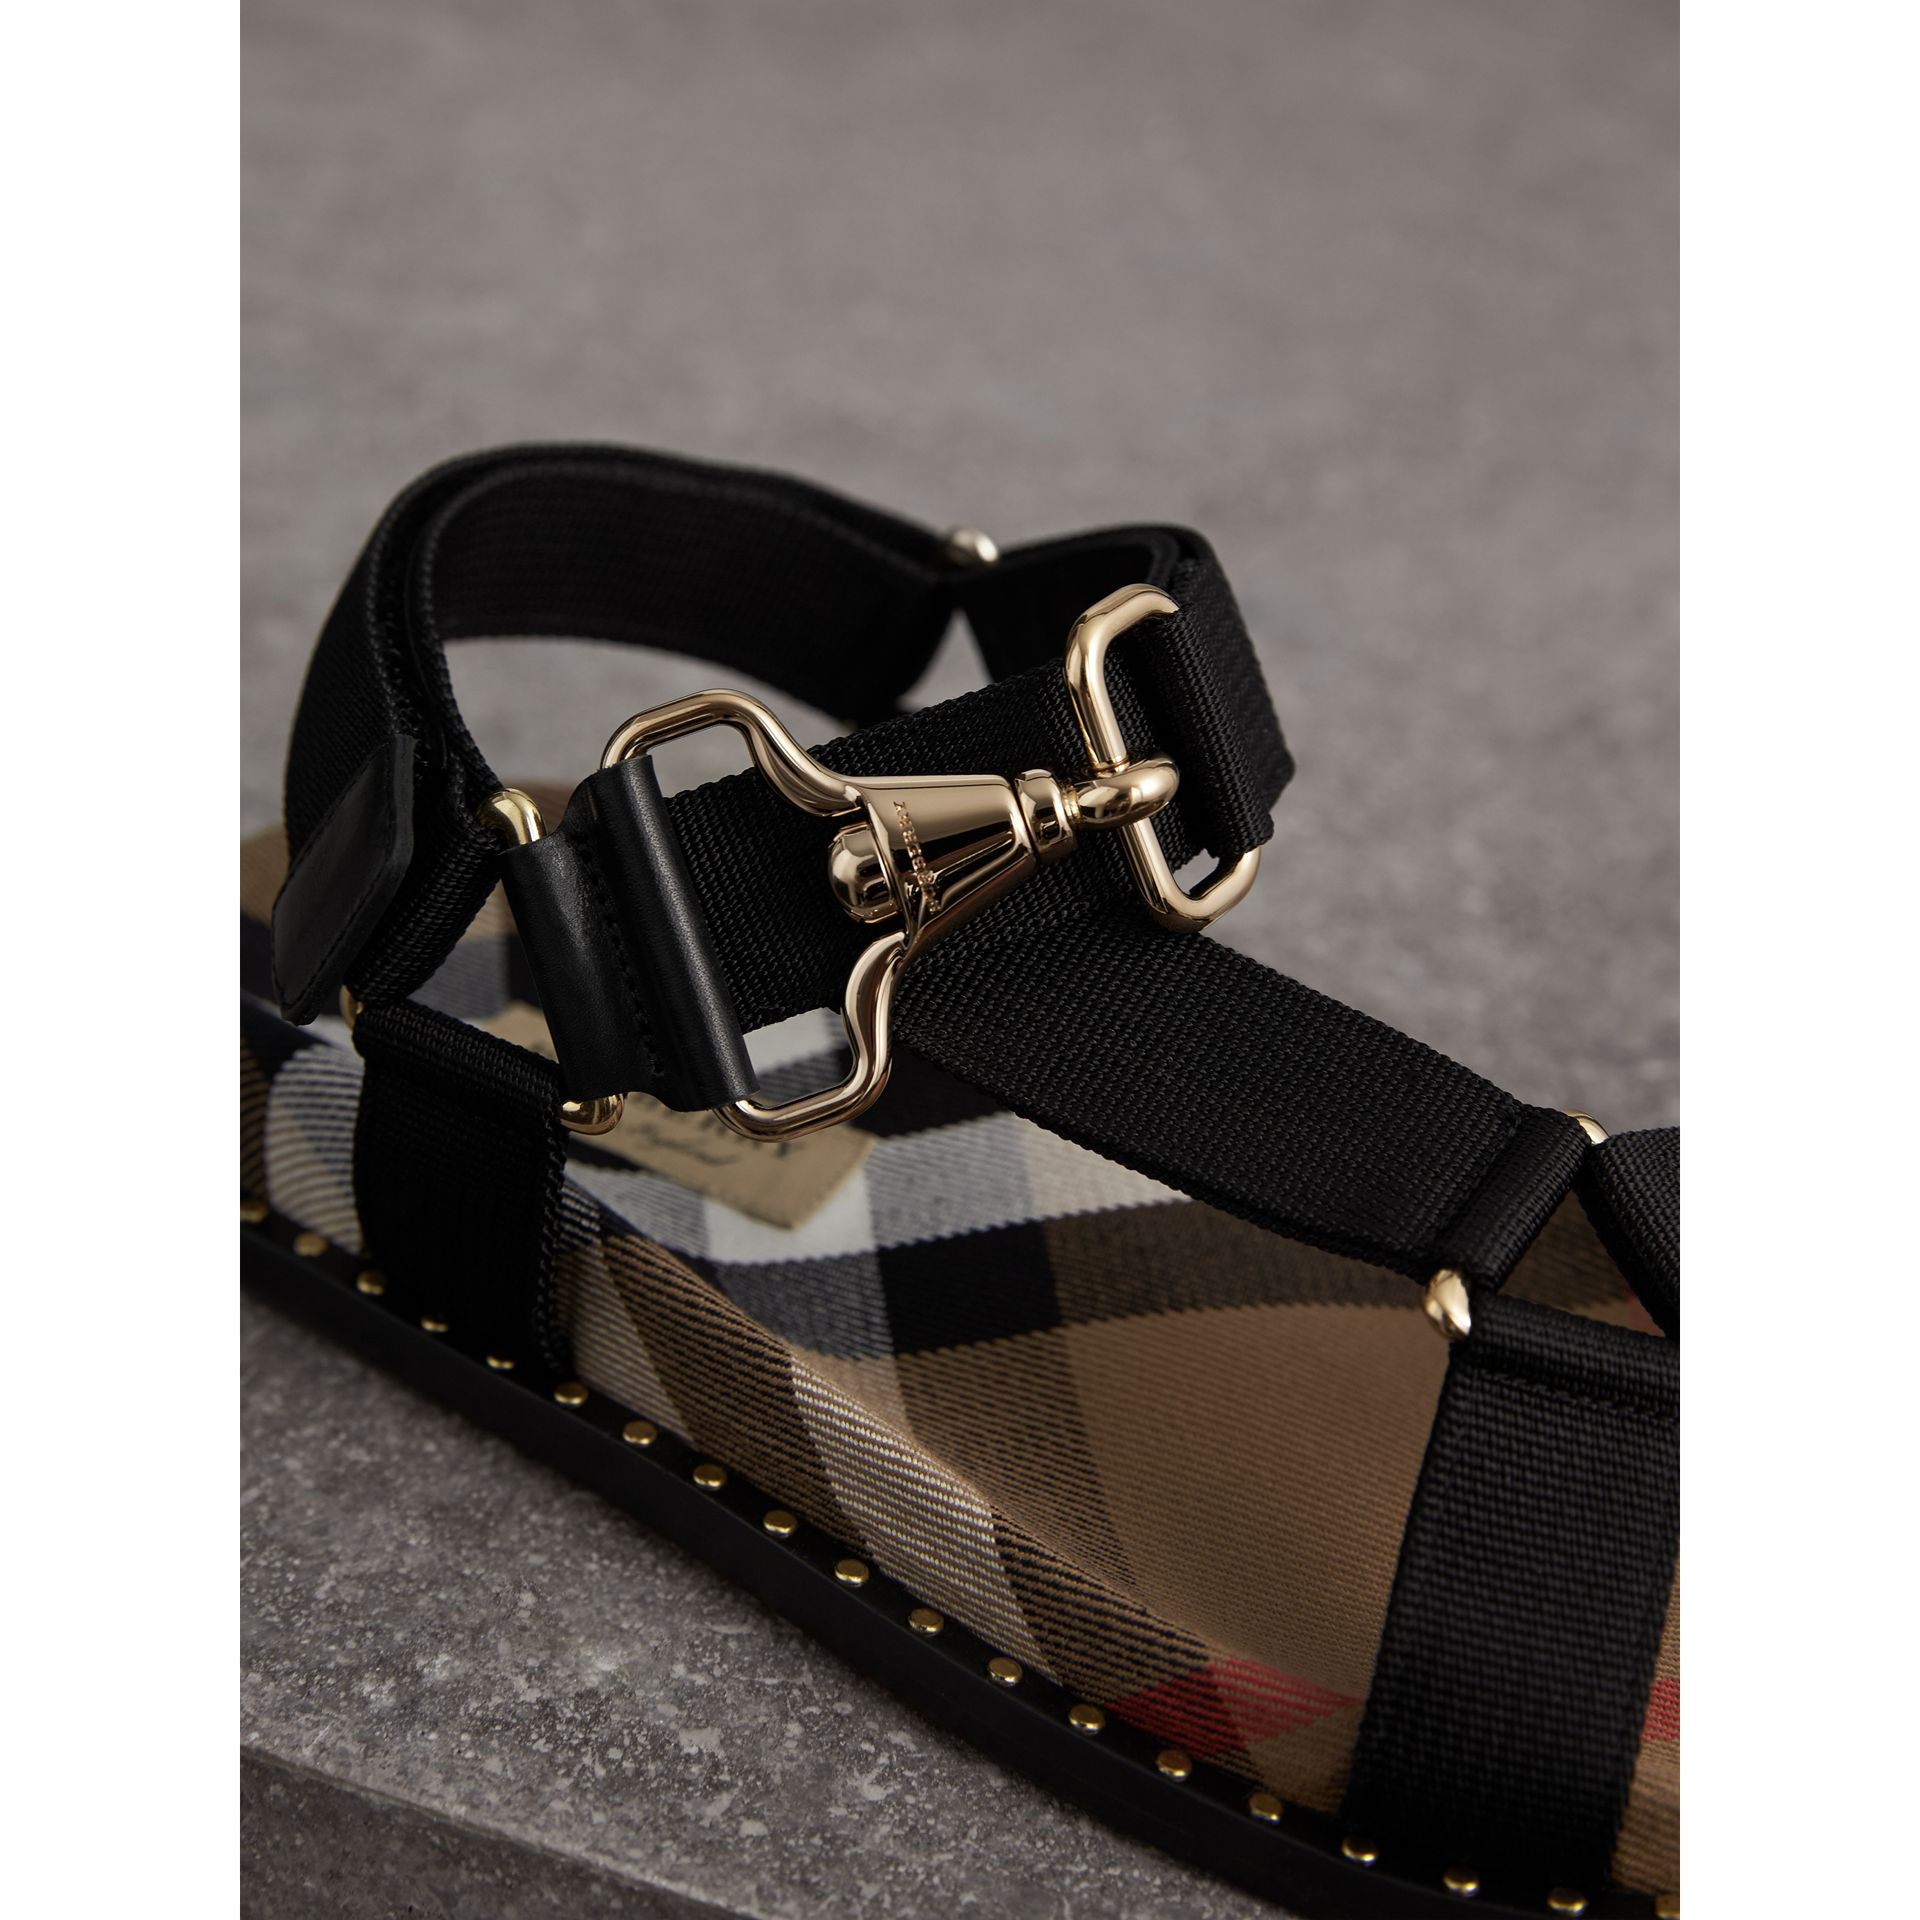 House Check Strappy Sandals with Hardware Detail in Black - Women | Burberry United States - gallery image 2